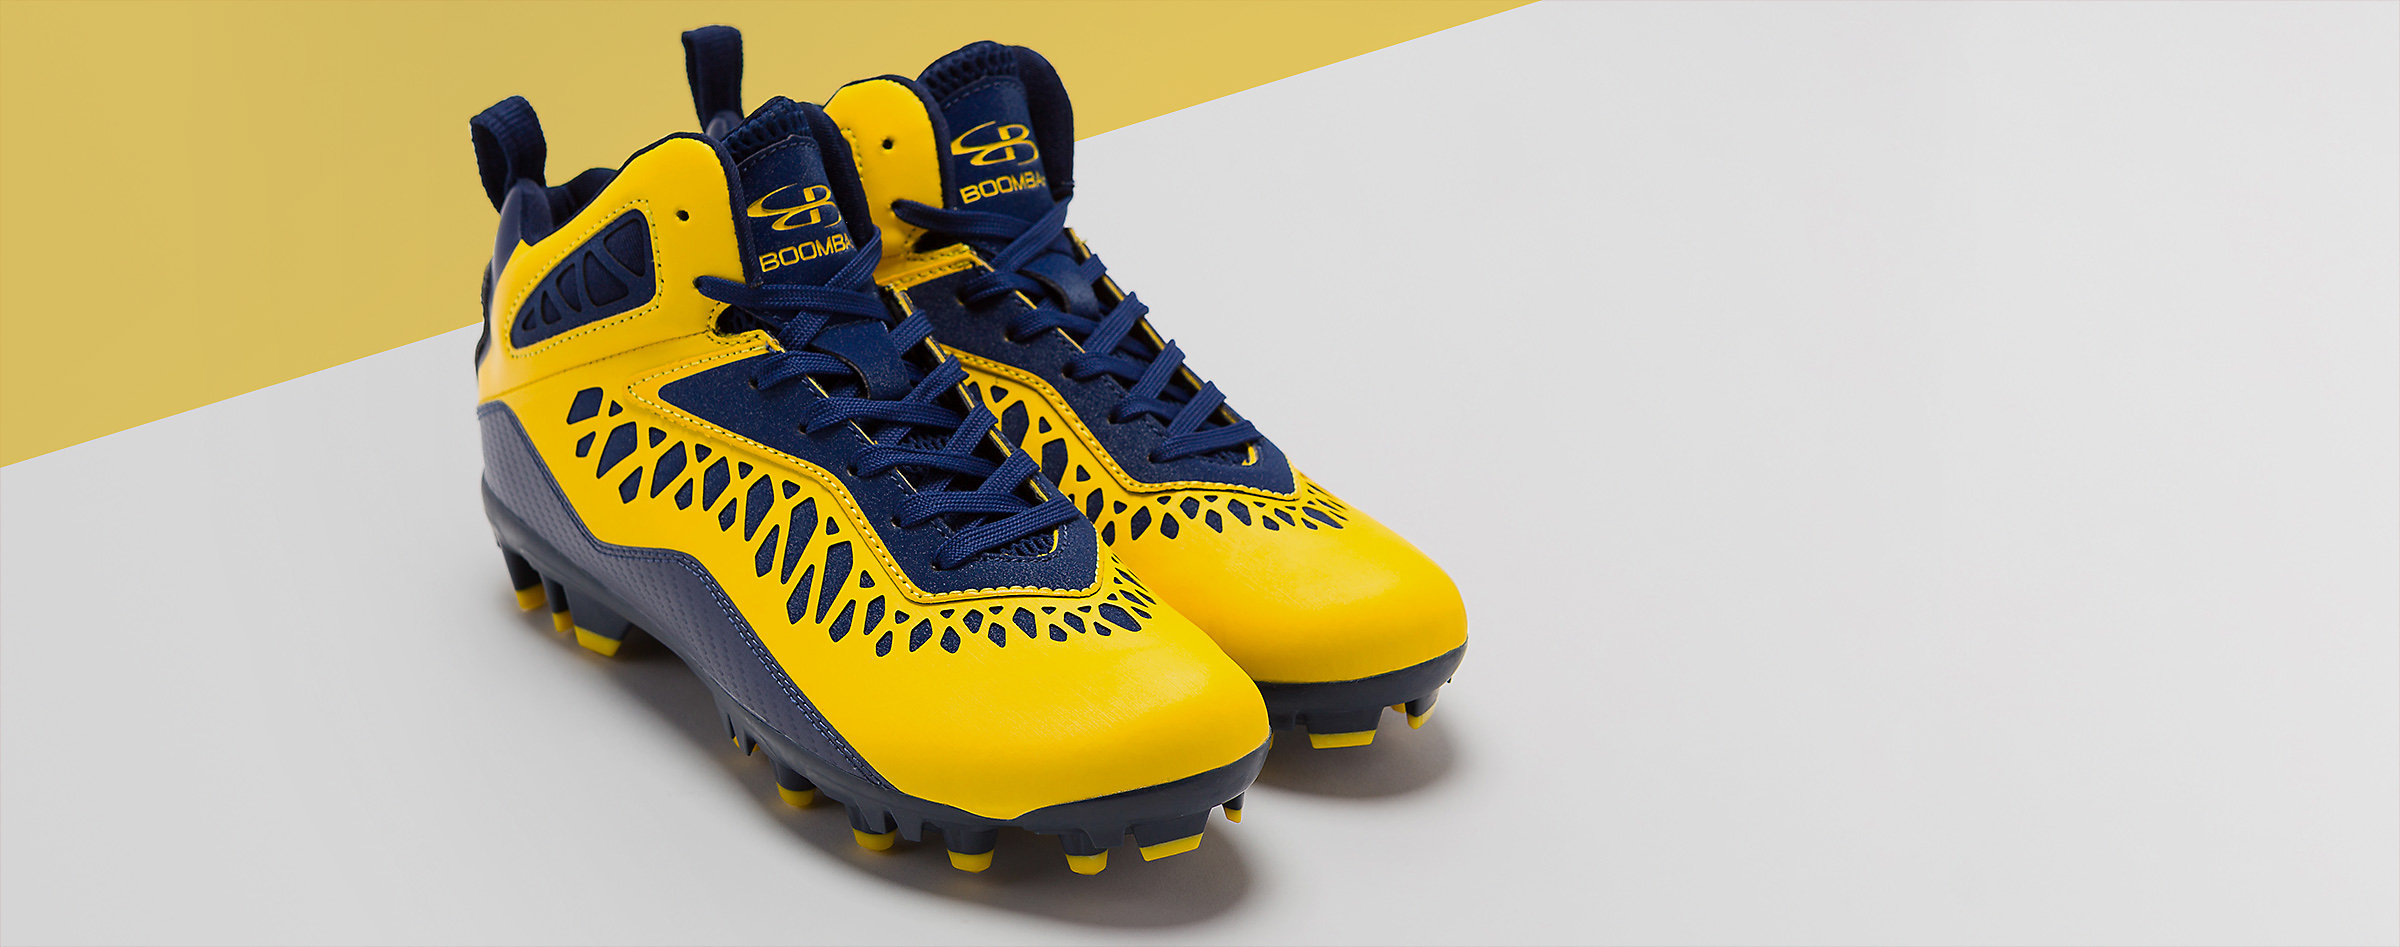 pair of yellow football cleats